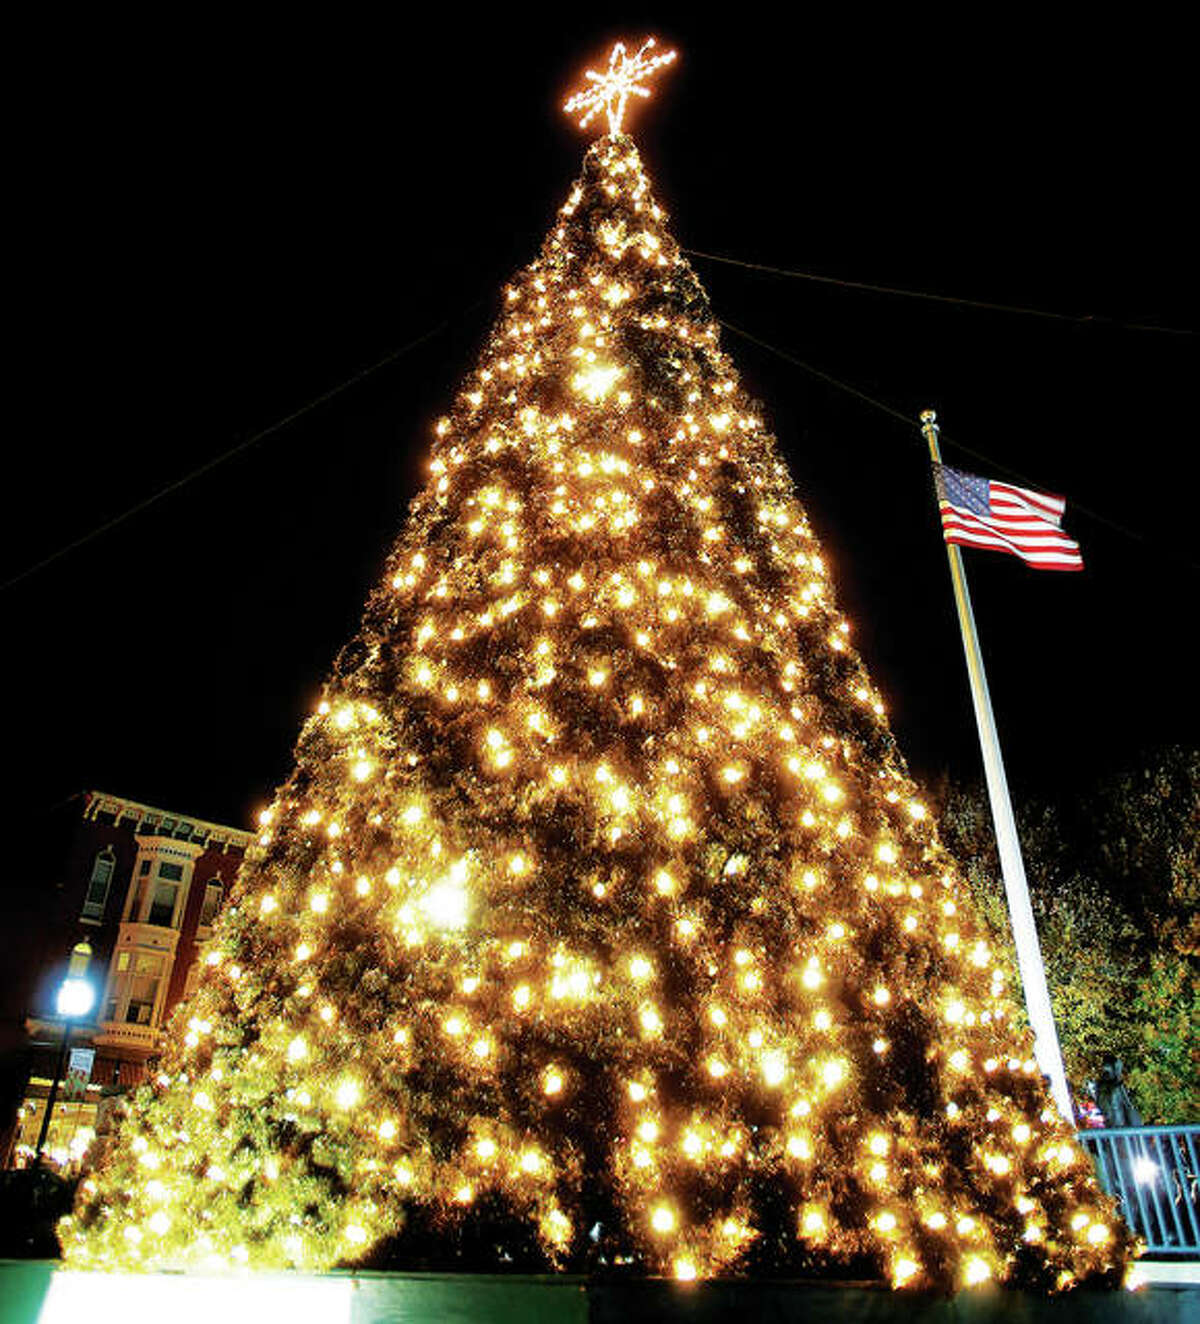 The Alton Christmas tree after being lit for the season at last year's ceremony.